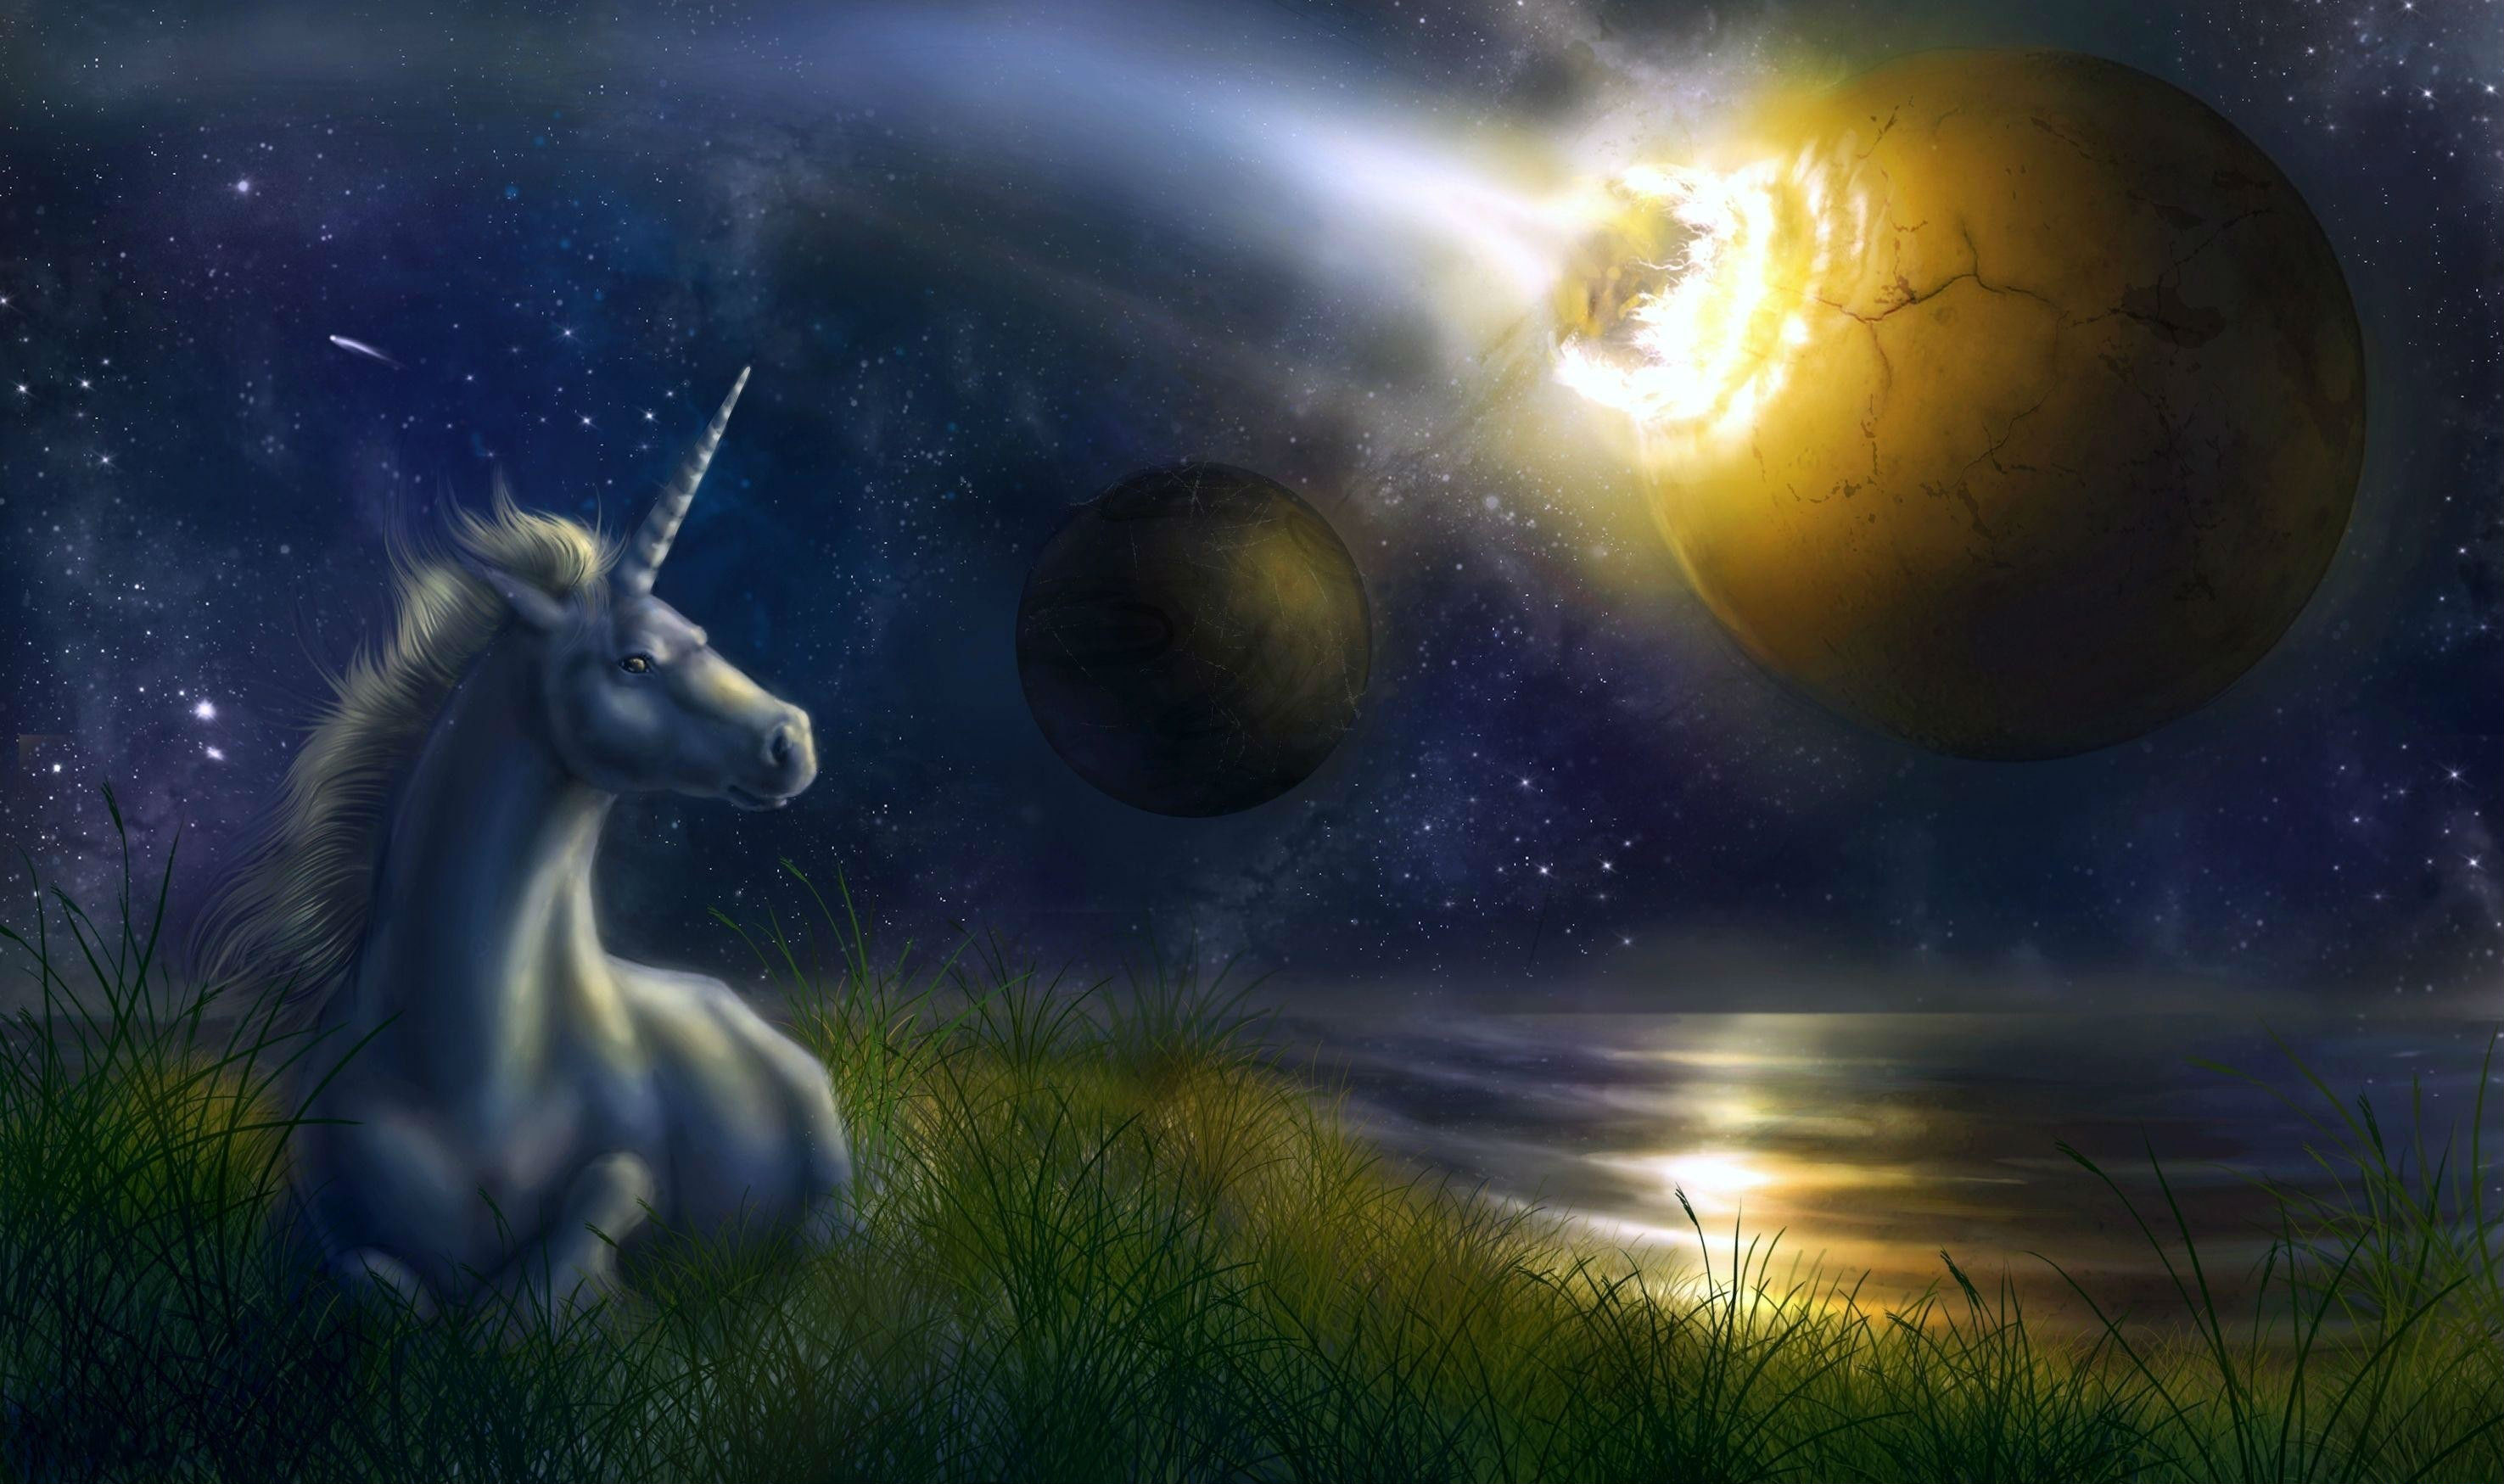 Hd wallpaper unicorn - Hd Wallpaper Background Id 214449 2951x1749 Fantasy Unicorn